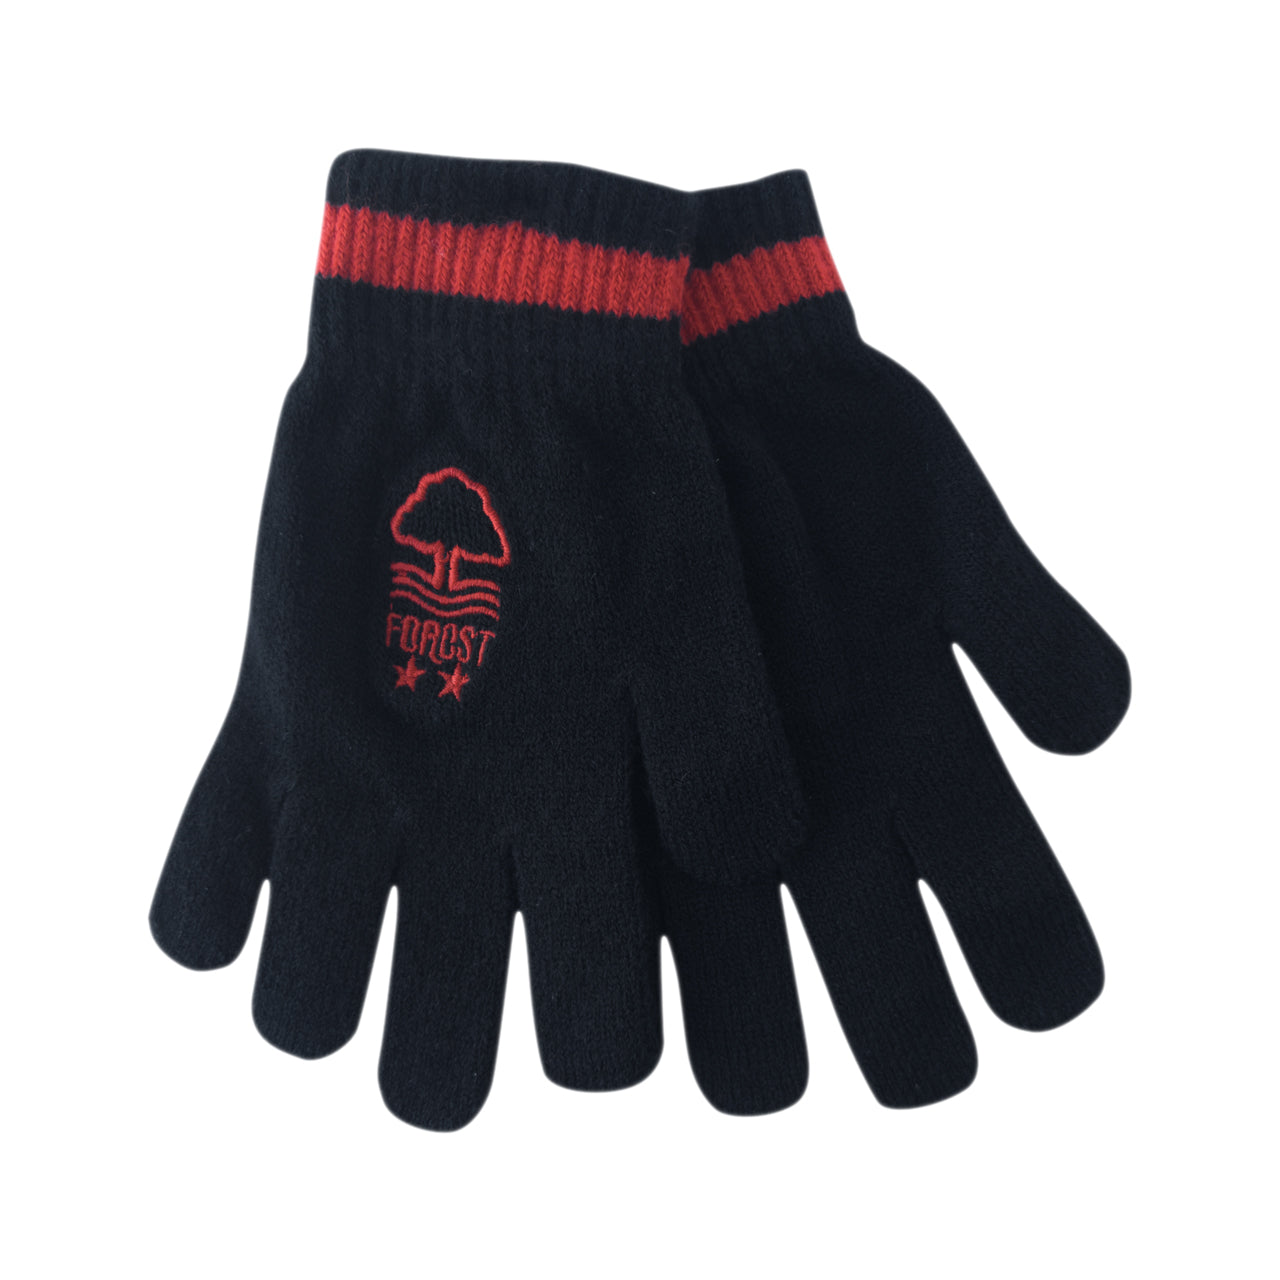 NFFC Black/Red Junior Knitted Gloves - Nottingham Forest